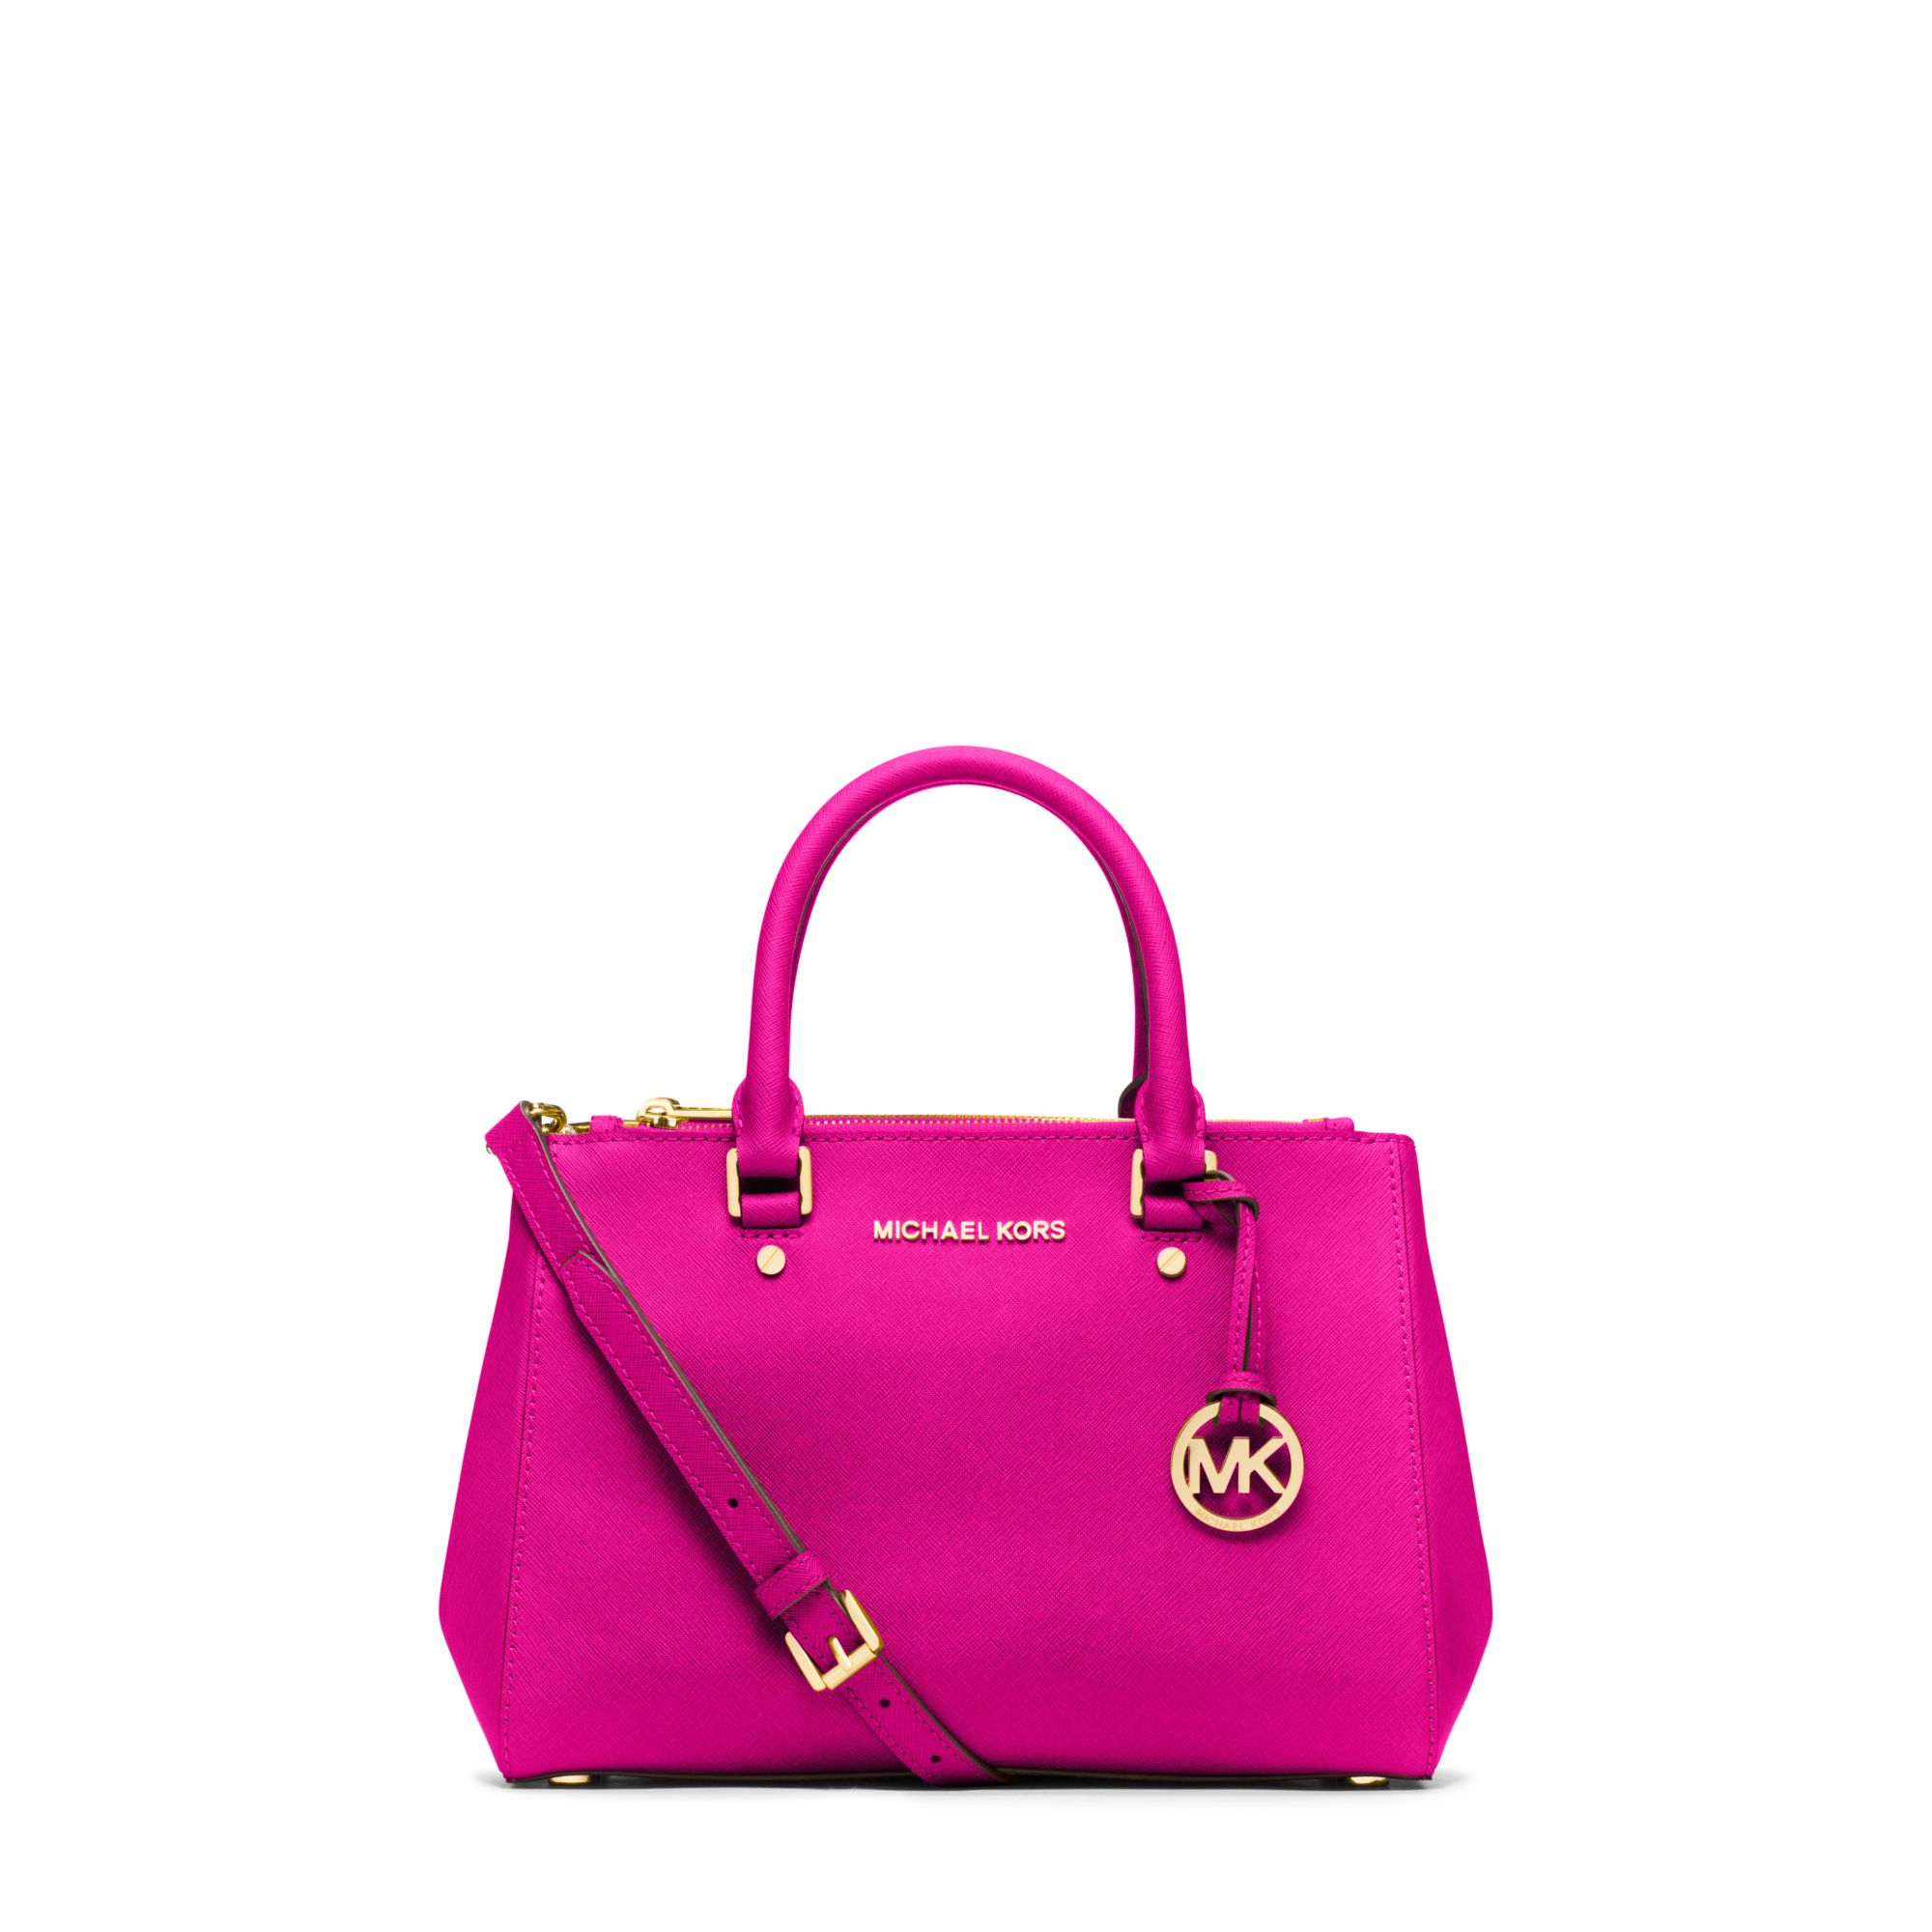 michael kors sutton small saffiano leather satchel in pink. Black Bedroom Furniture Sets. Home Design Ideas